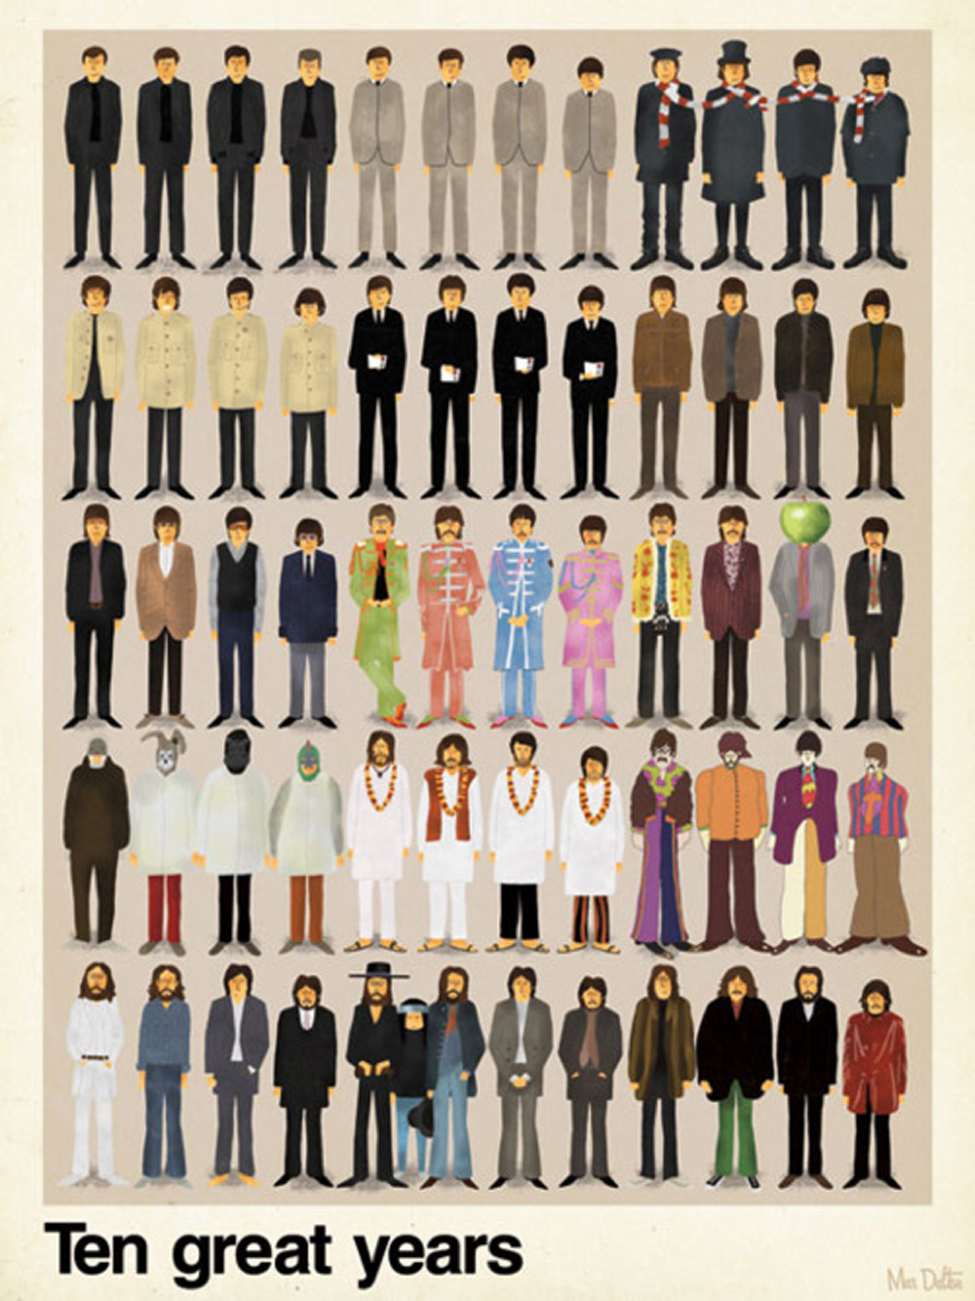 10 years of Beatles style (Courtesy of Mauro Amaral)